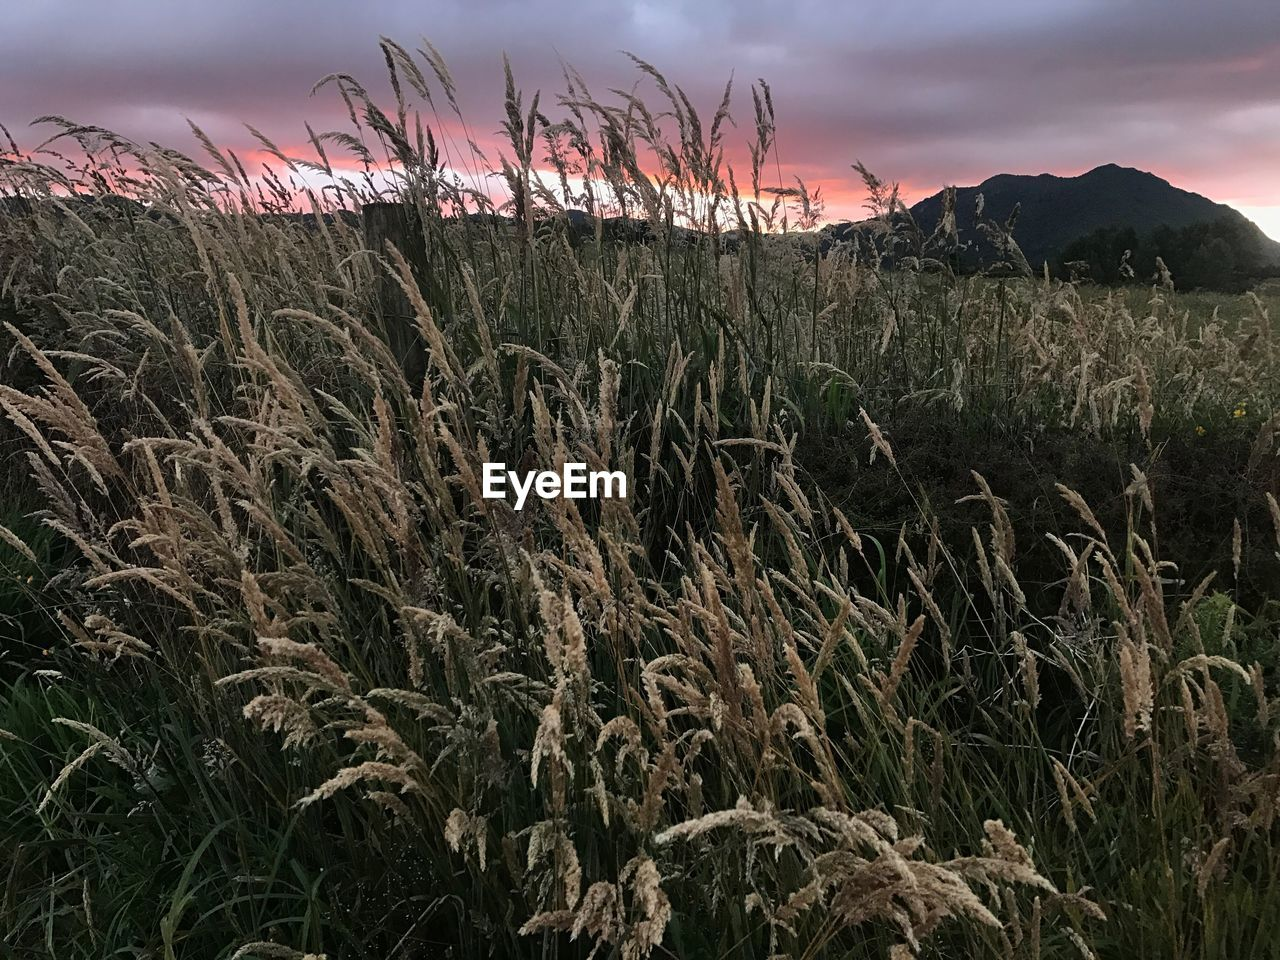 growth, sunset, nature, field, agriculture, no people, outdoors, tranquility, plant, tranquil scene, beauty in nature, sky, cereal plant, landscape, scenics, day, rural scene, wheat, grass, close-up, freshness